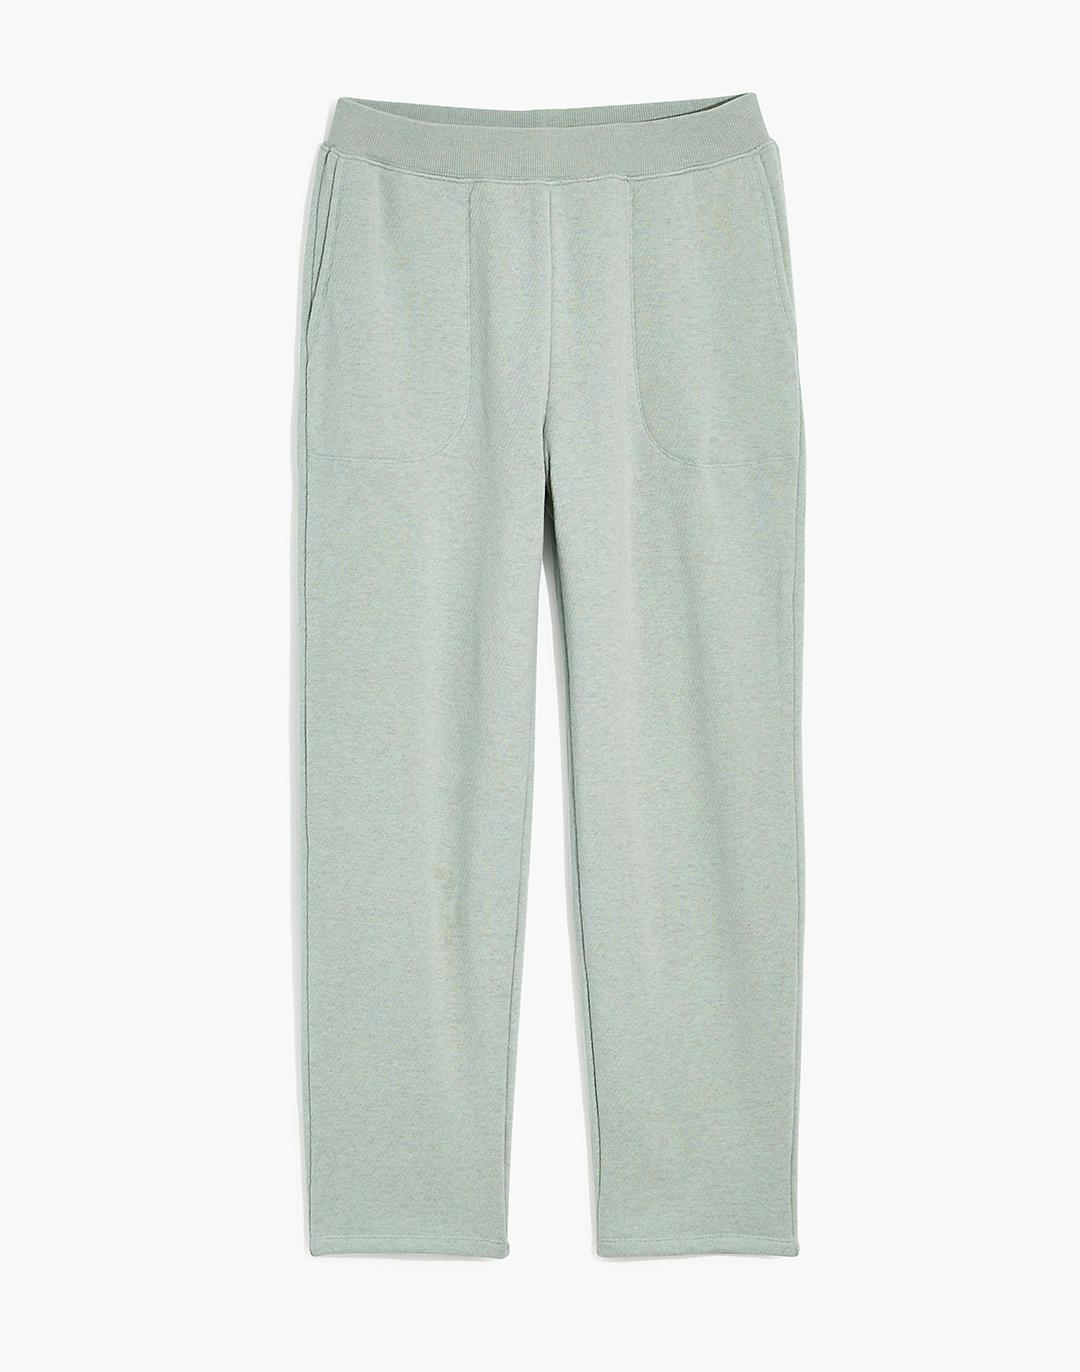 MWL Airyterry Tapered Sweatpants: Stitched-Pocket Edition 5